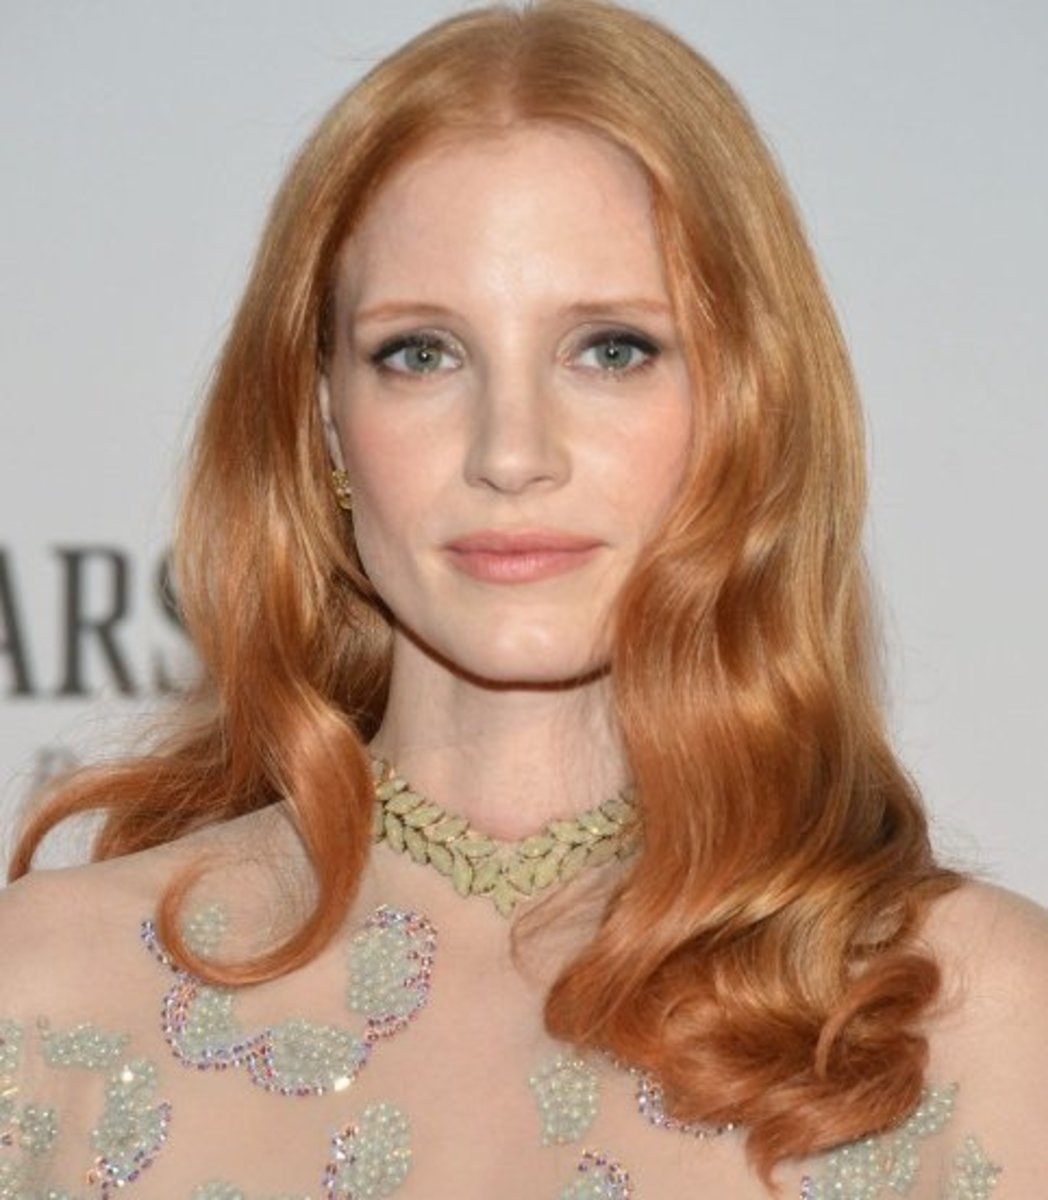 Jessica Chastain, a strawberry blonde